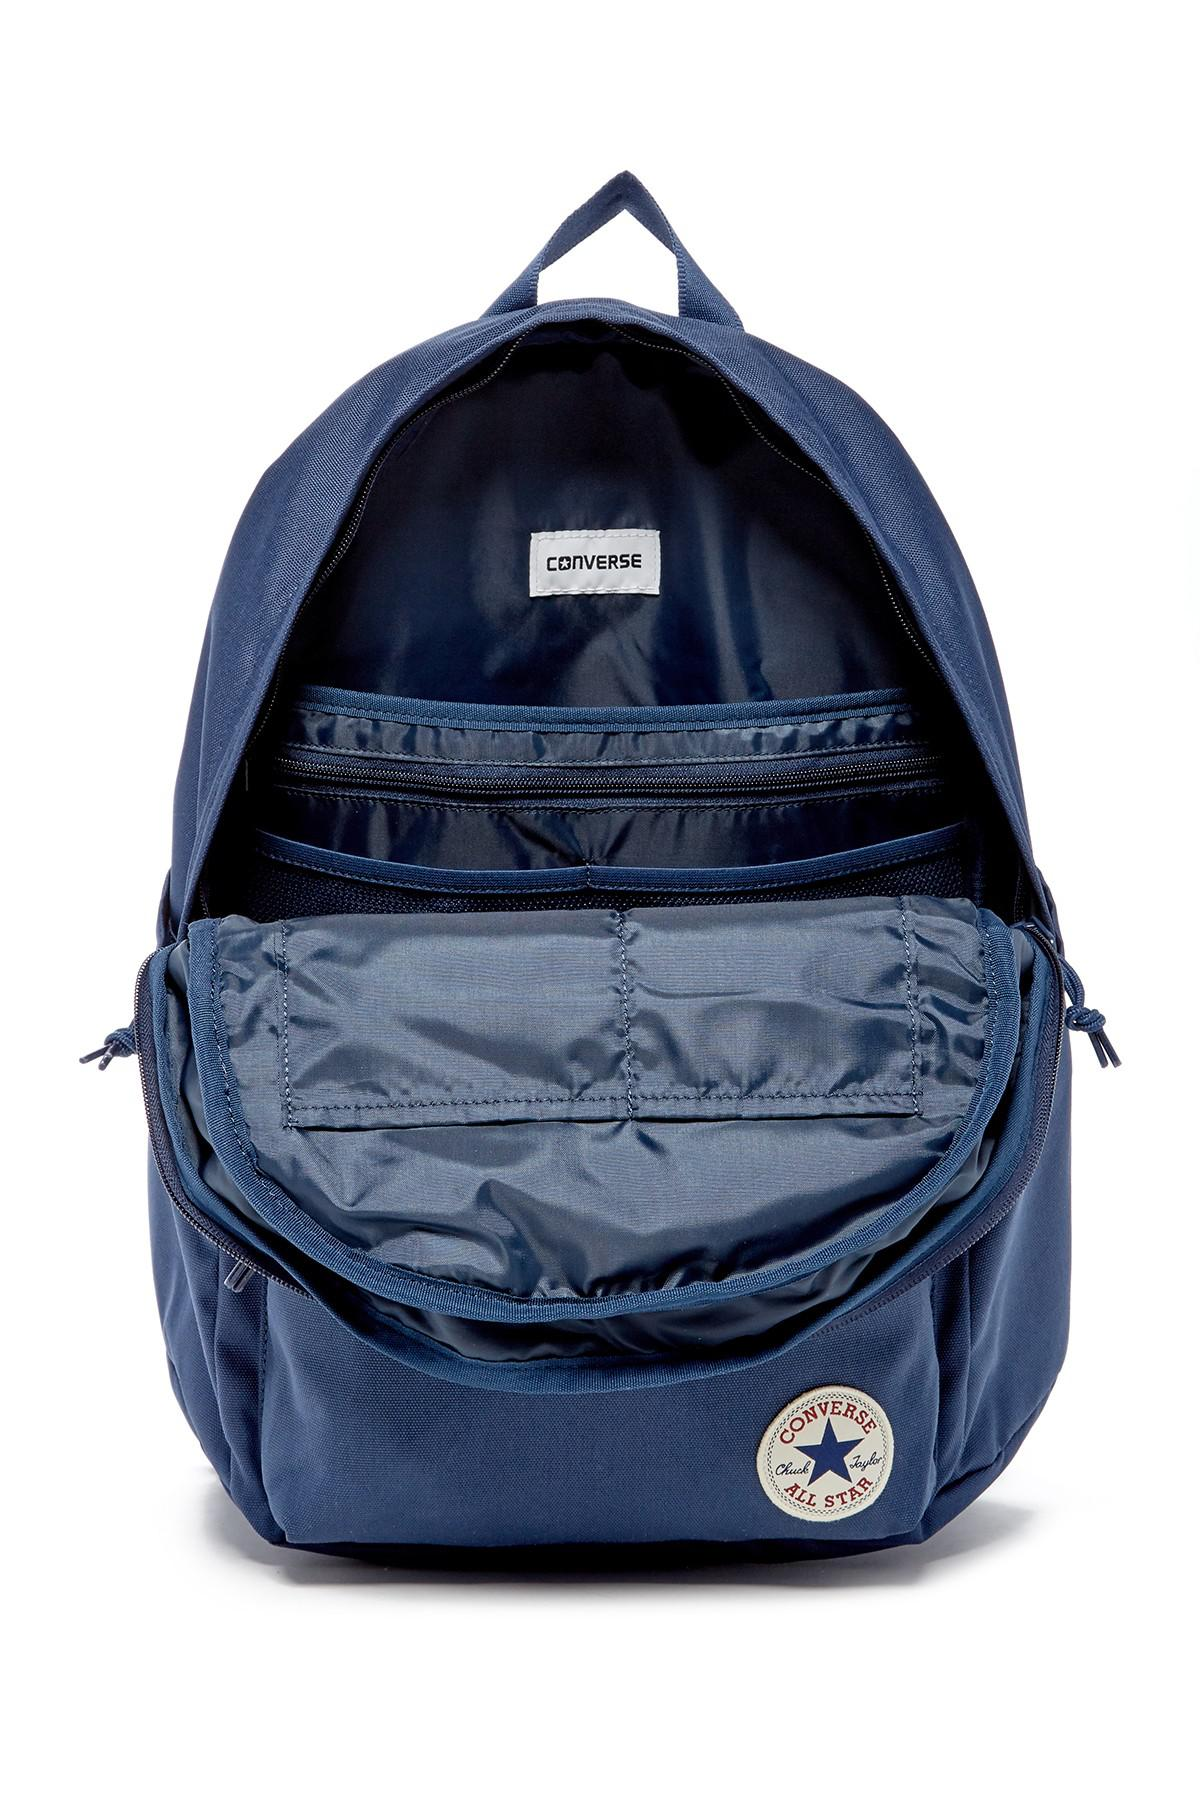 Lyst - Converse Poly Chuck Plus 1.0 Backpack in Blue 7d0cfeeaeb34a